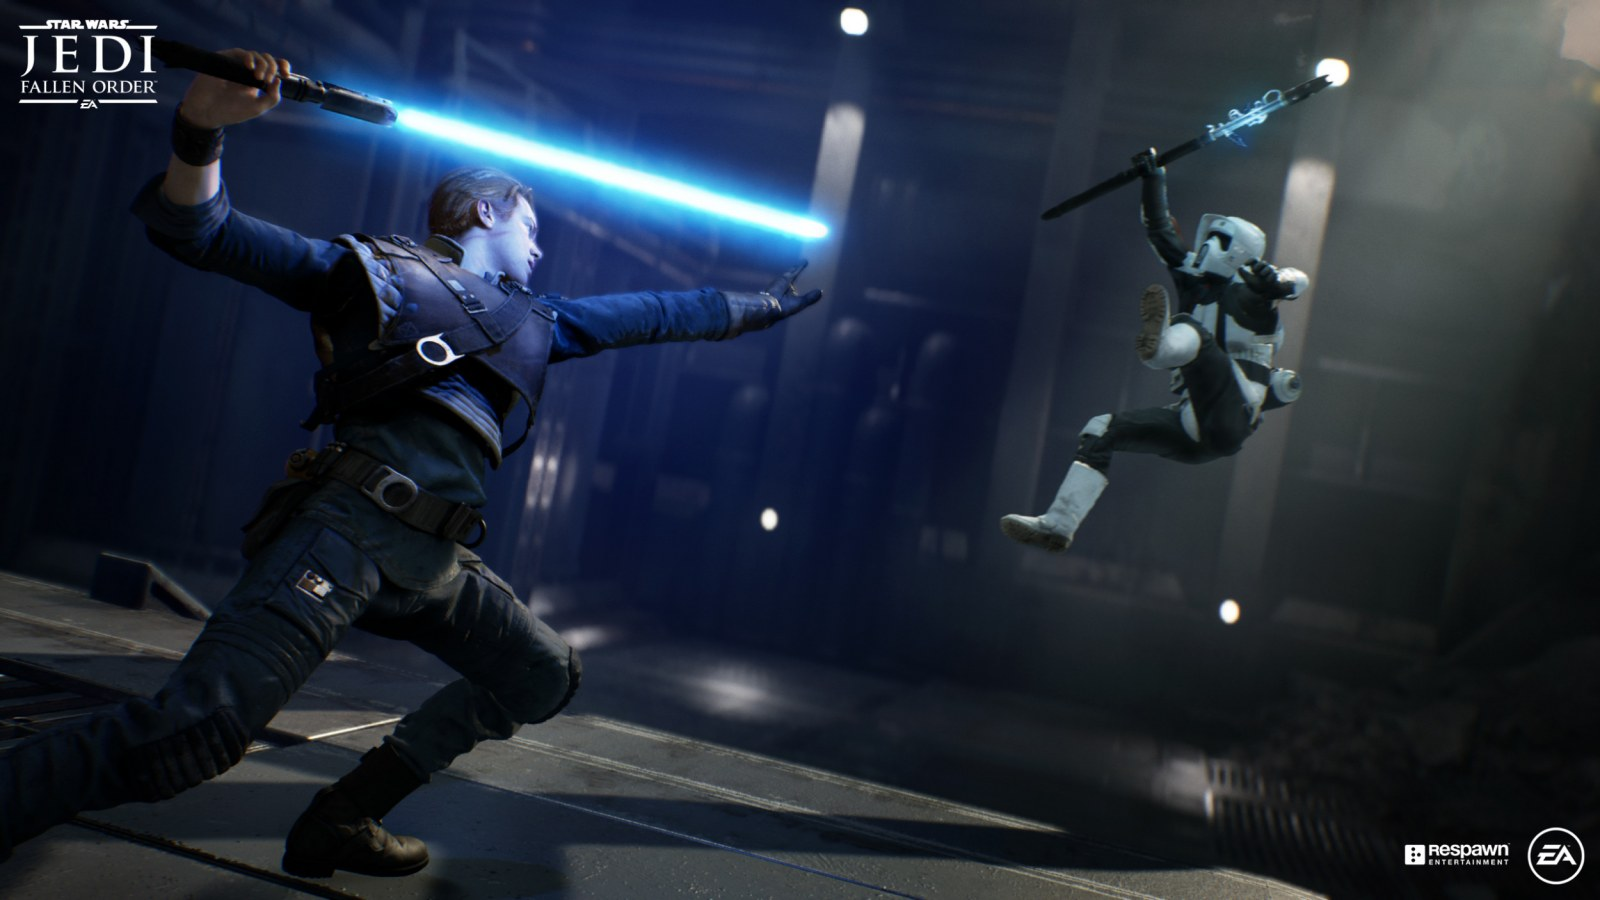 Star Wars Jedi Fallen Order Release Time When Can I Download On